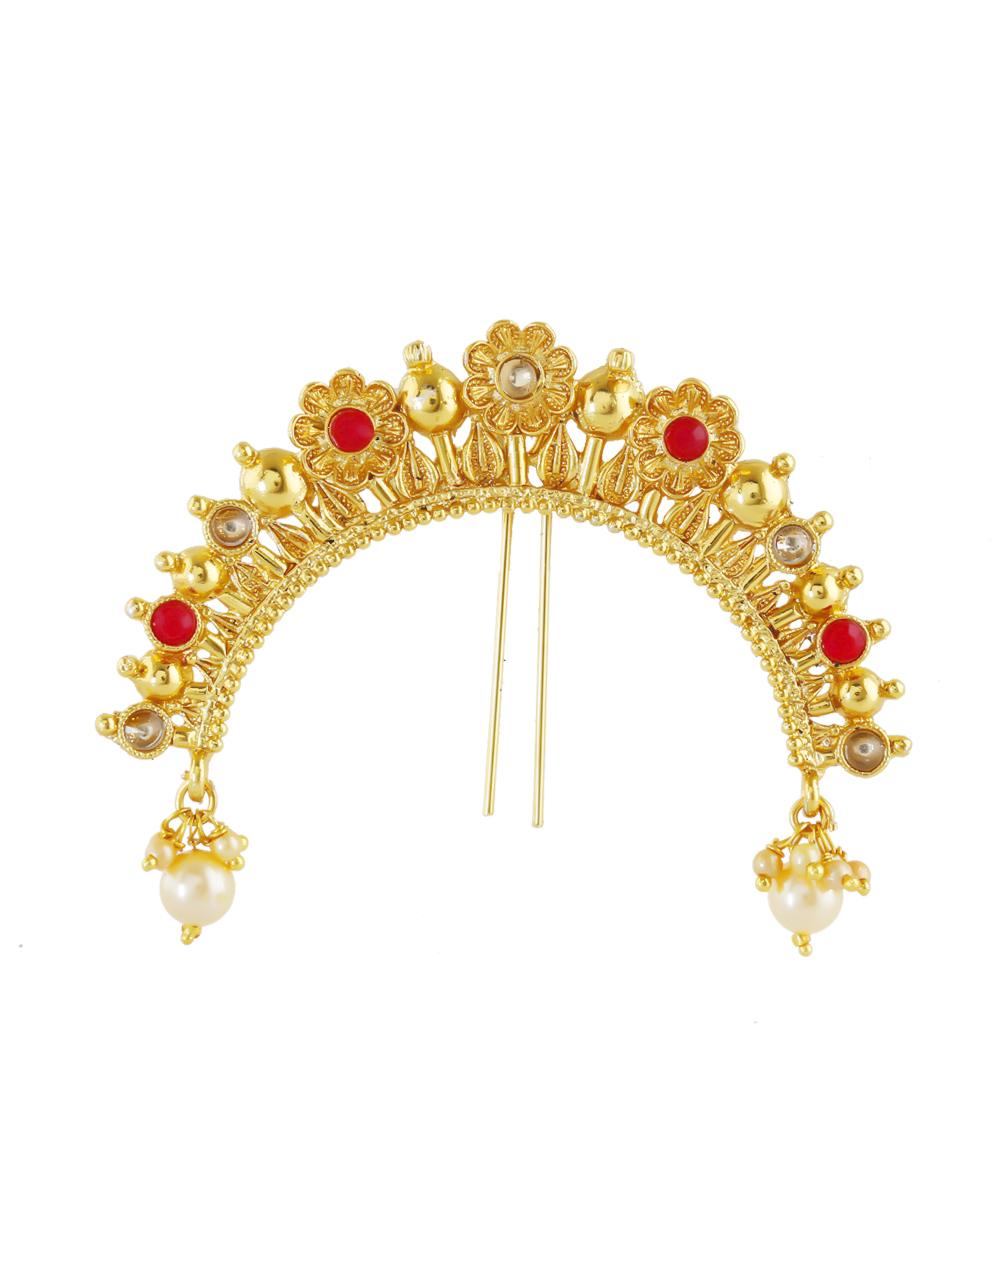 Red Colour Gold Finish Floral Design Brooch Pin